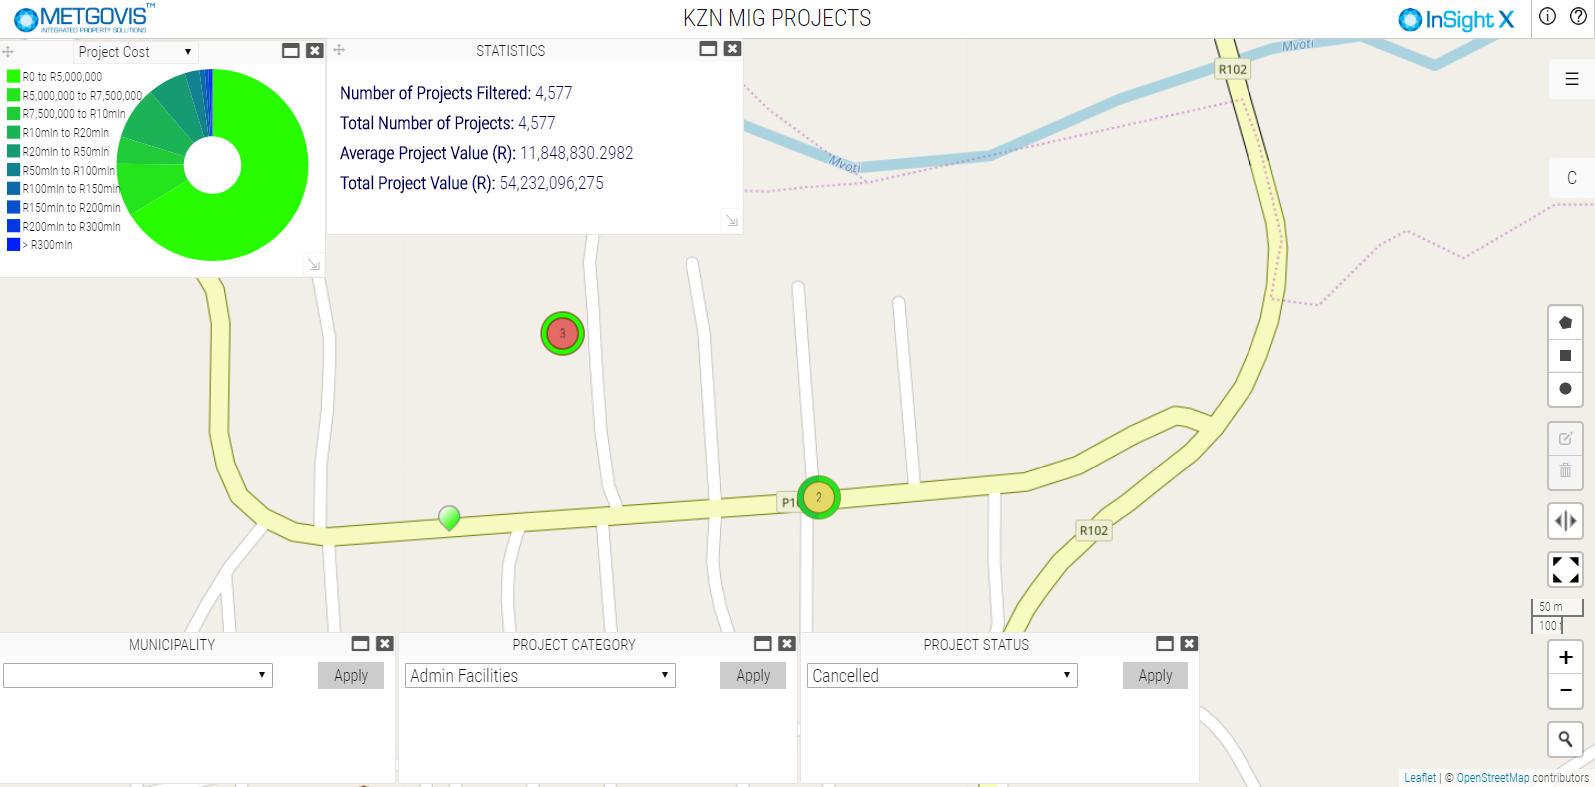 Fig. 2: A dashboard to display the status and progress of Municipal Infrastructure Grant projects.